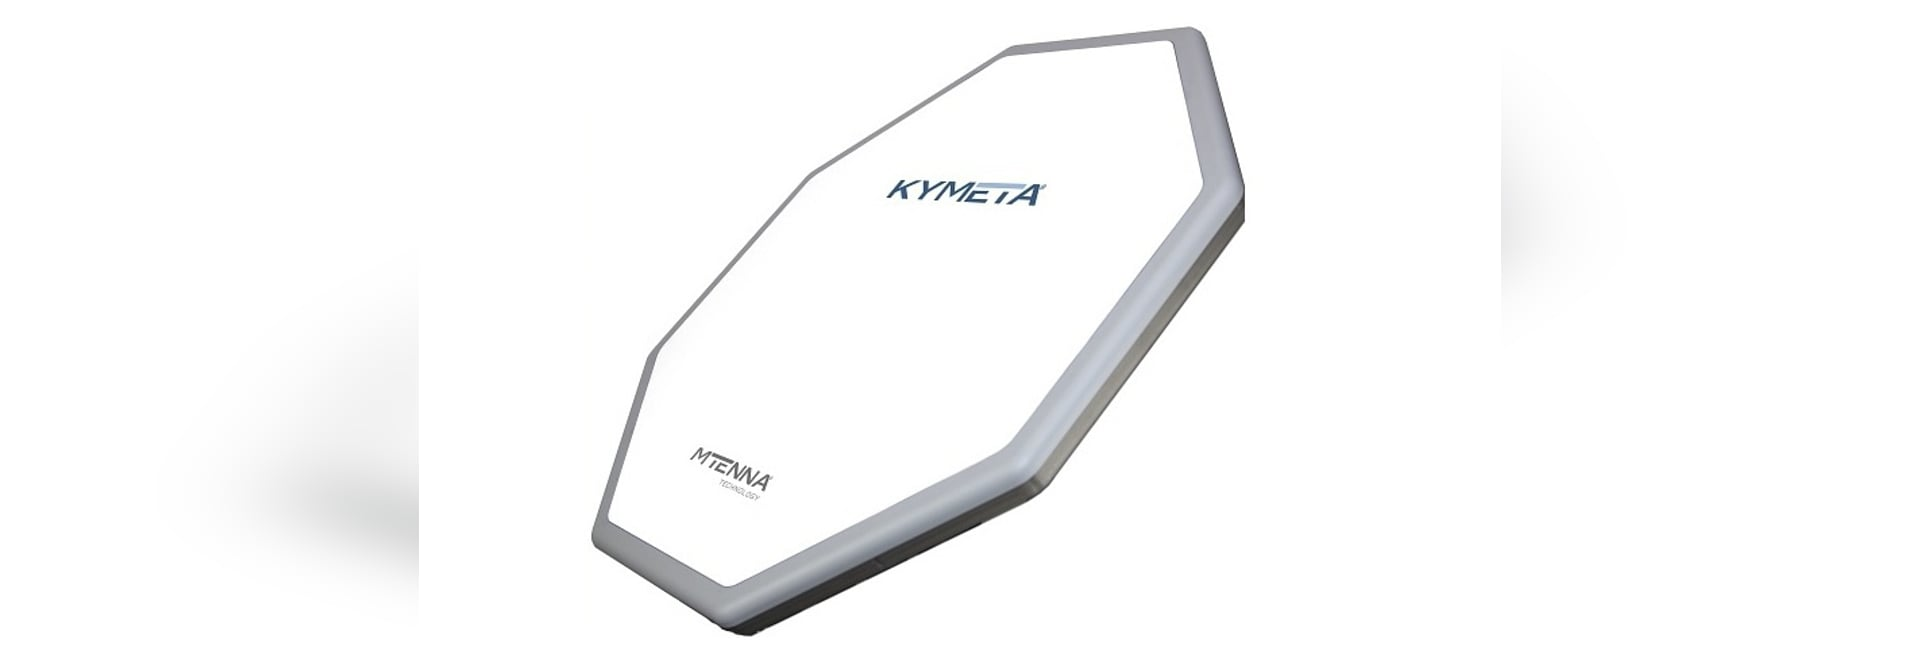 mTenna uses light, thin, software-steered antennas that have been specifically designed for mobile communications